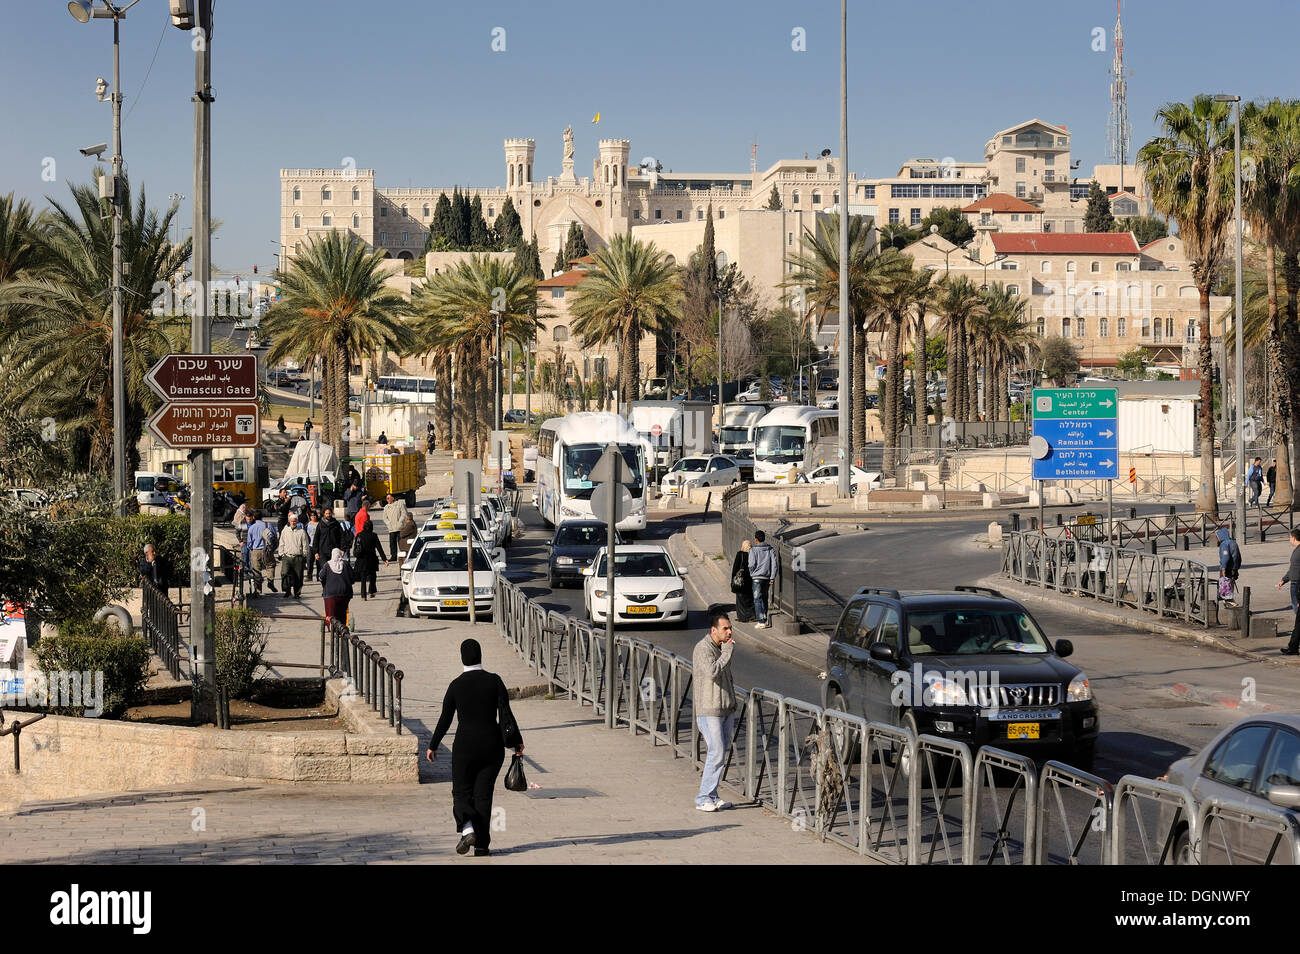 Street scene in front of the old city and Notre-Dame of the centre of Jerusalem, Jerusalem, Israel, Middle East - Stock Image